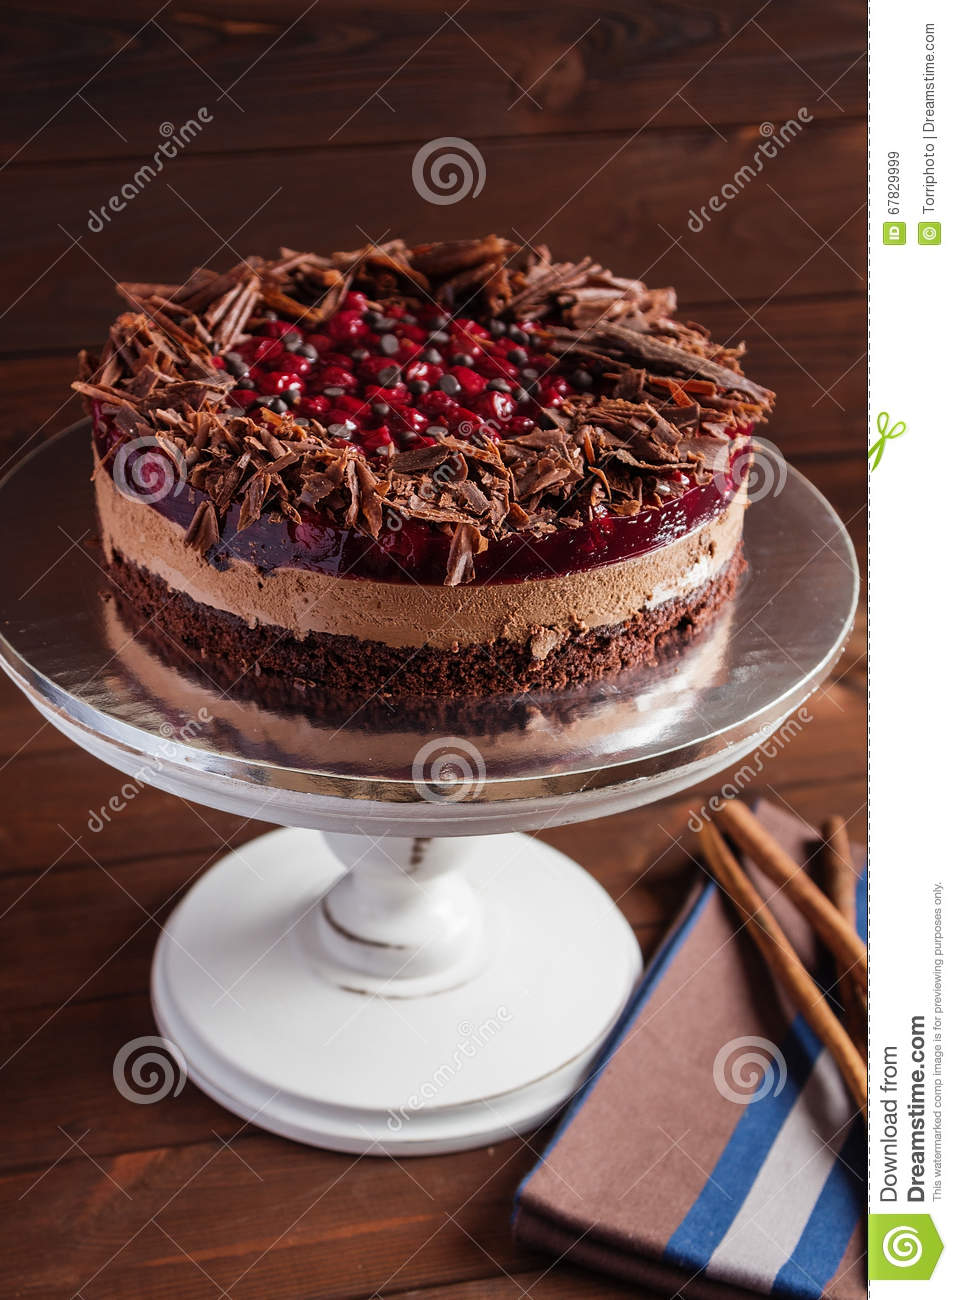 Chocolate And Cherry Cake Stock Photo - Image: 67829999